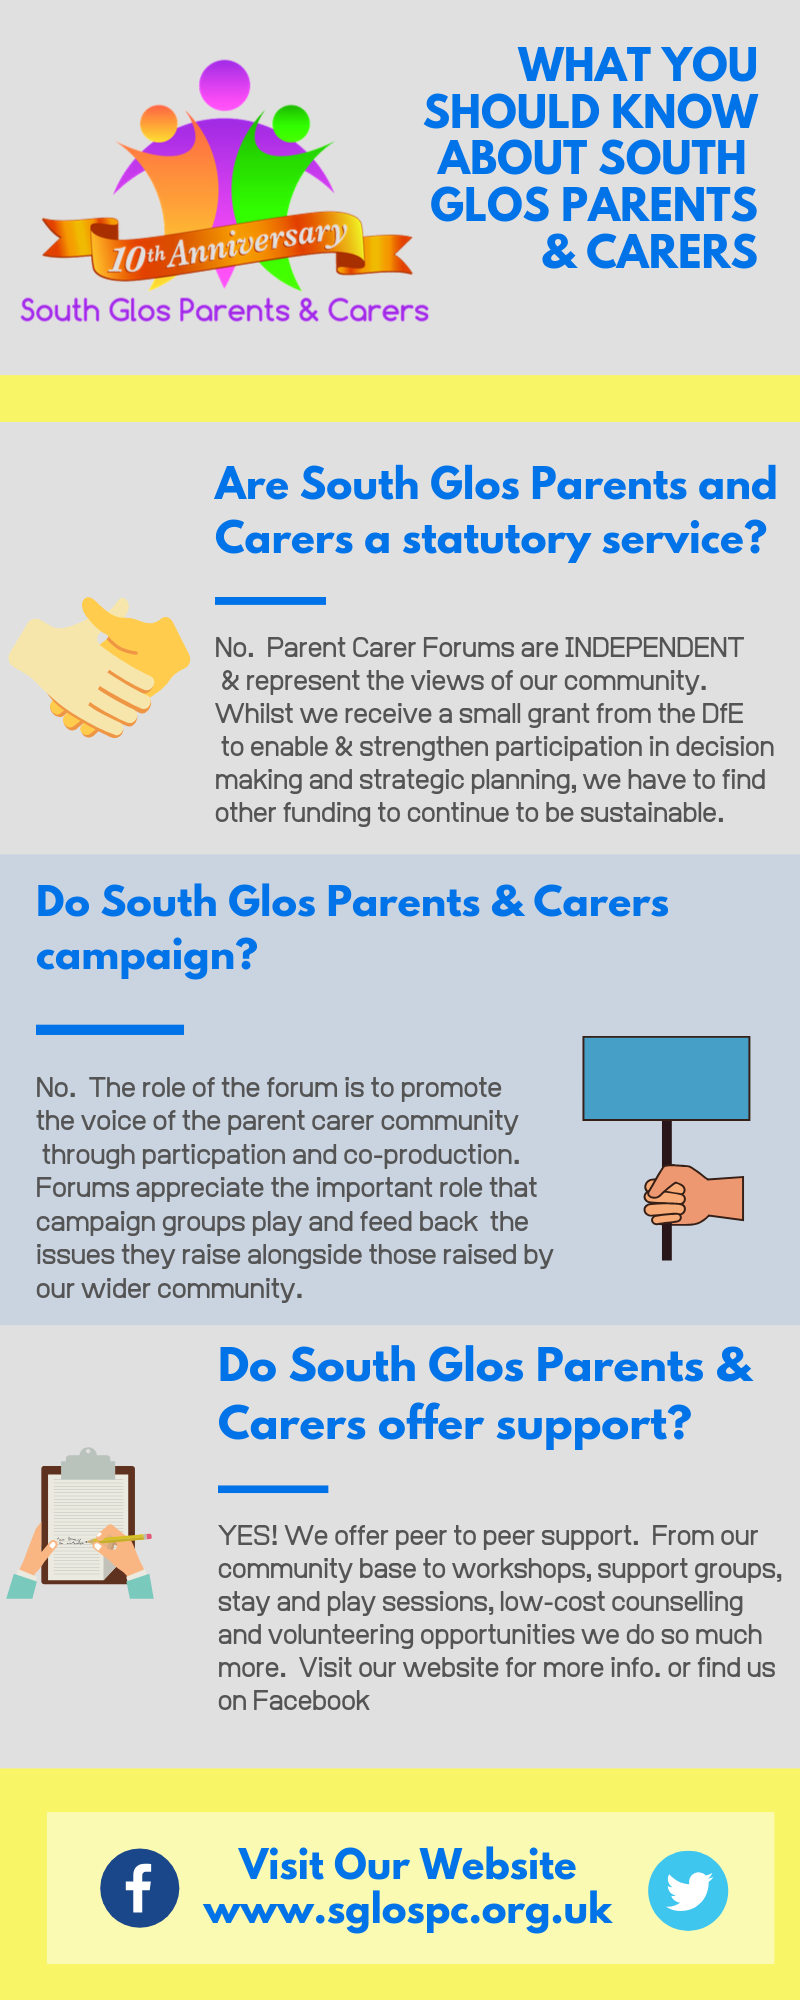 What you should know about south glos parents 7 carers (10).png